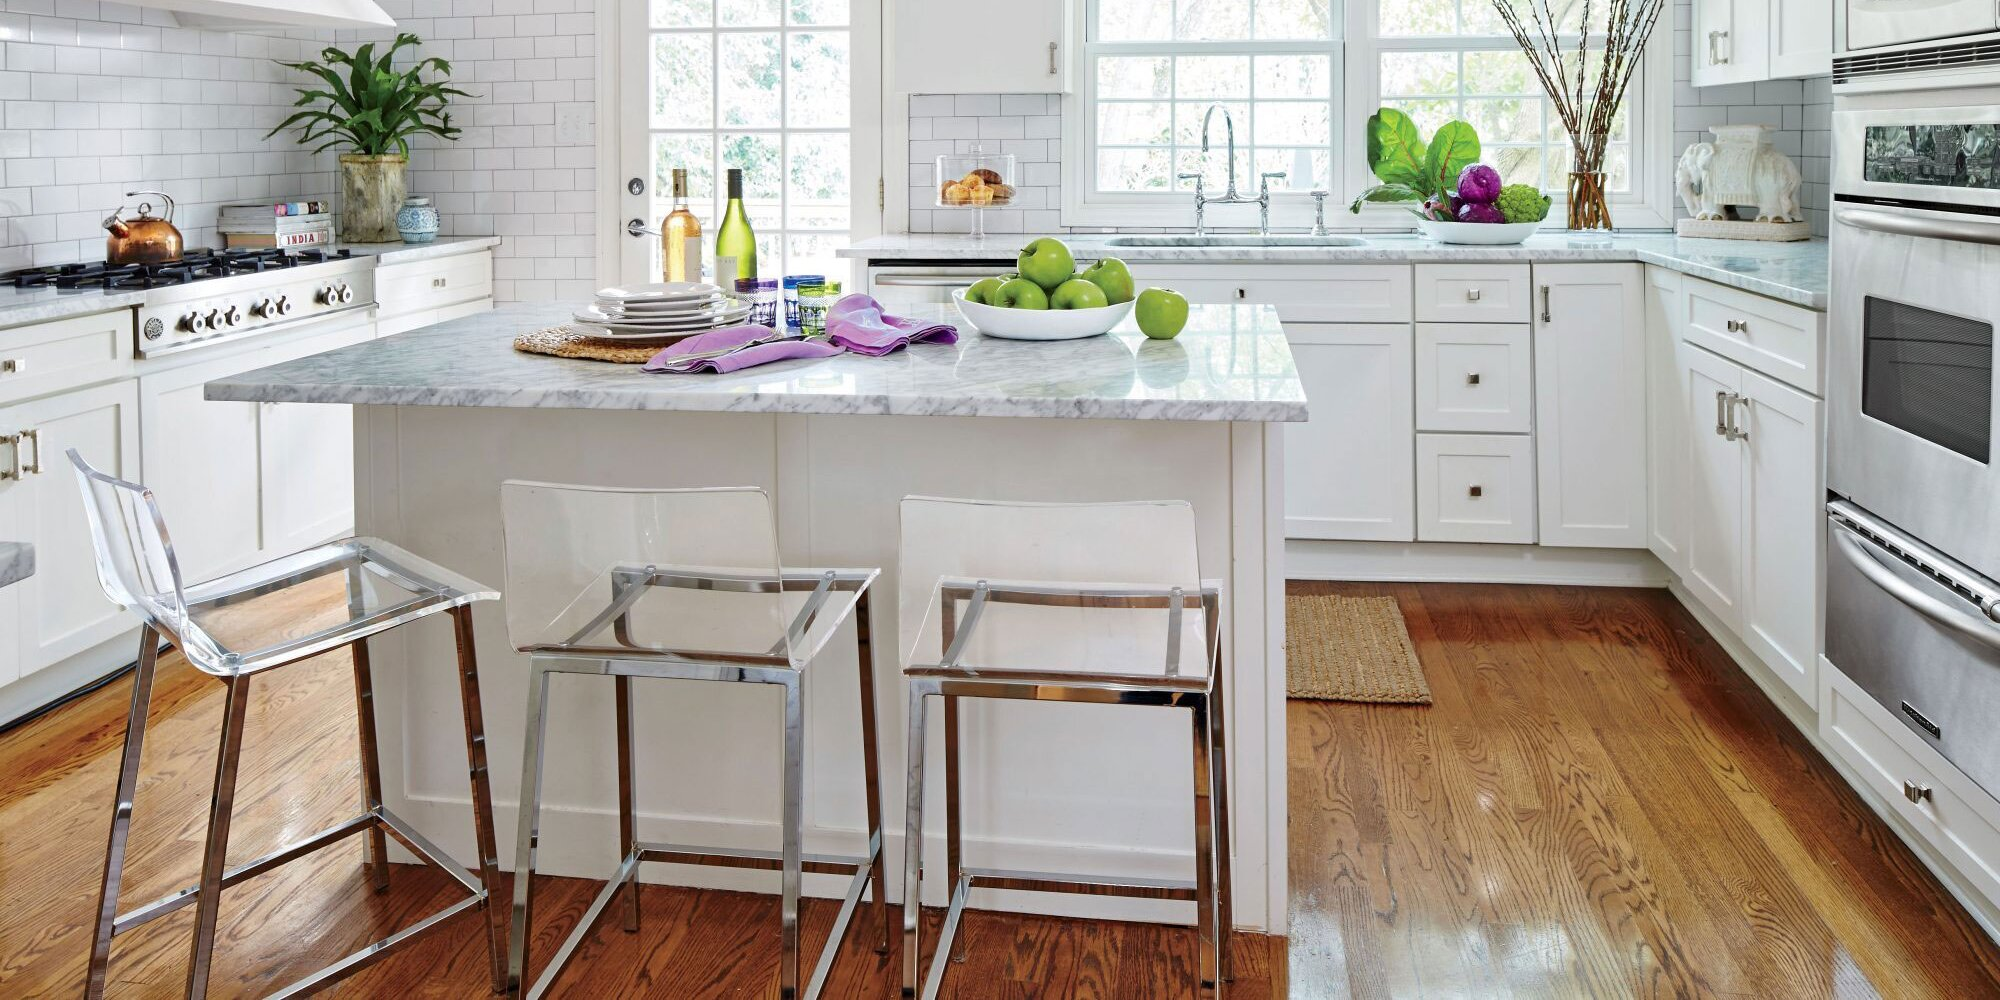 Kitchen Floor Trends That Just May Surprise You in 2021